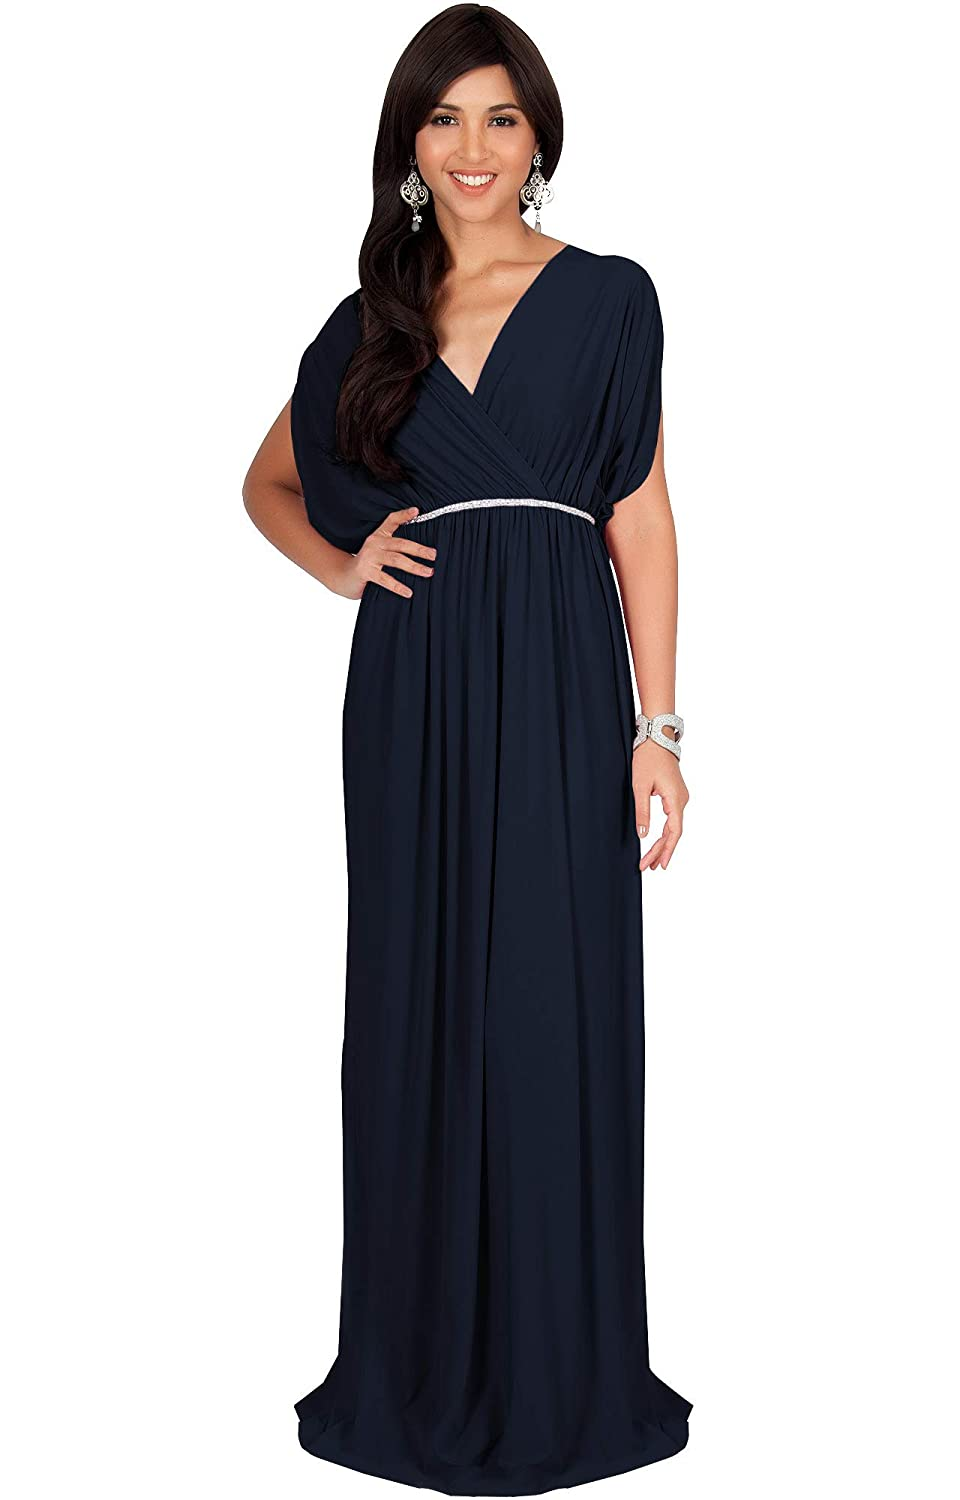 1920s Downton Abbey Dresses KOH KOH Womens Long Dolman Sleeve Wrap V-Neck Cocktail Bridesmaid Maxi Dress $44.95 AT vintagedancer.com